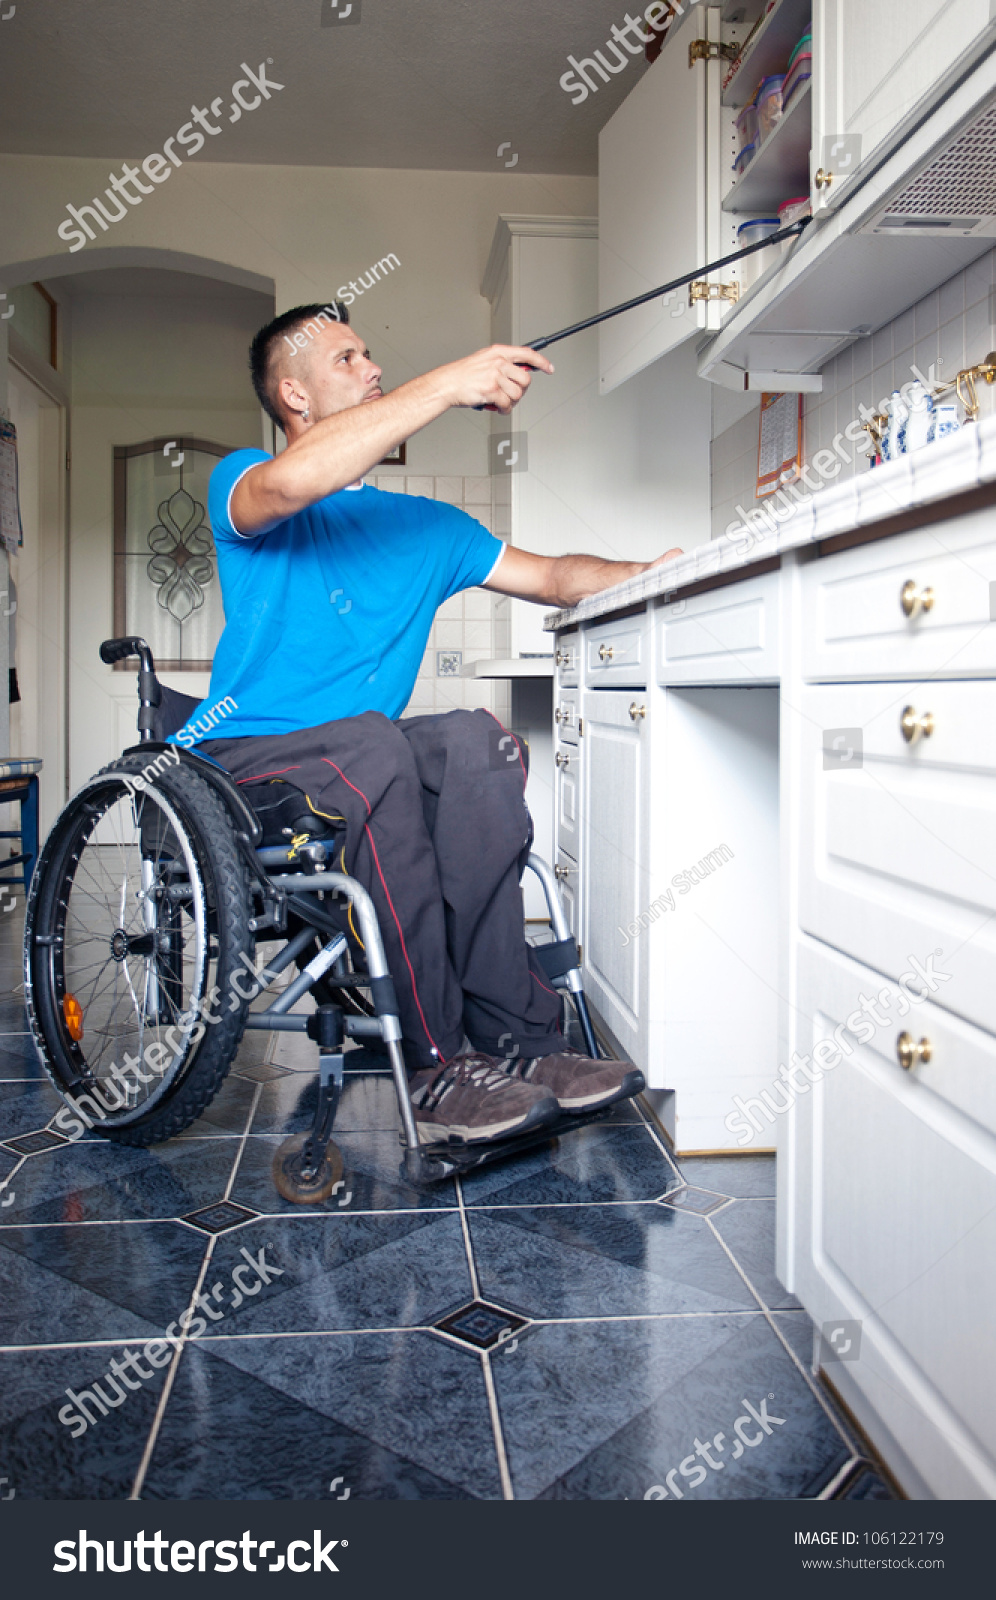 wheelchair essay paper Free essay: 1 the average return on sales (ros) in the us wheelchair industry is between 1-2% in 1993 what are the most important structural conditions.